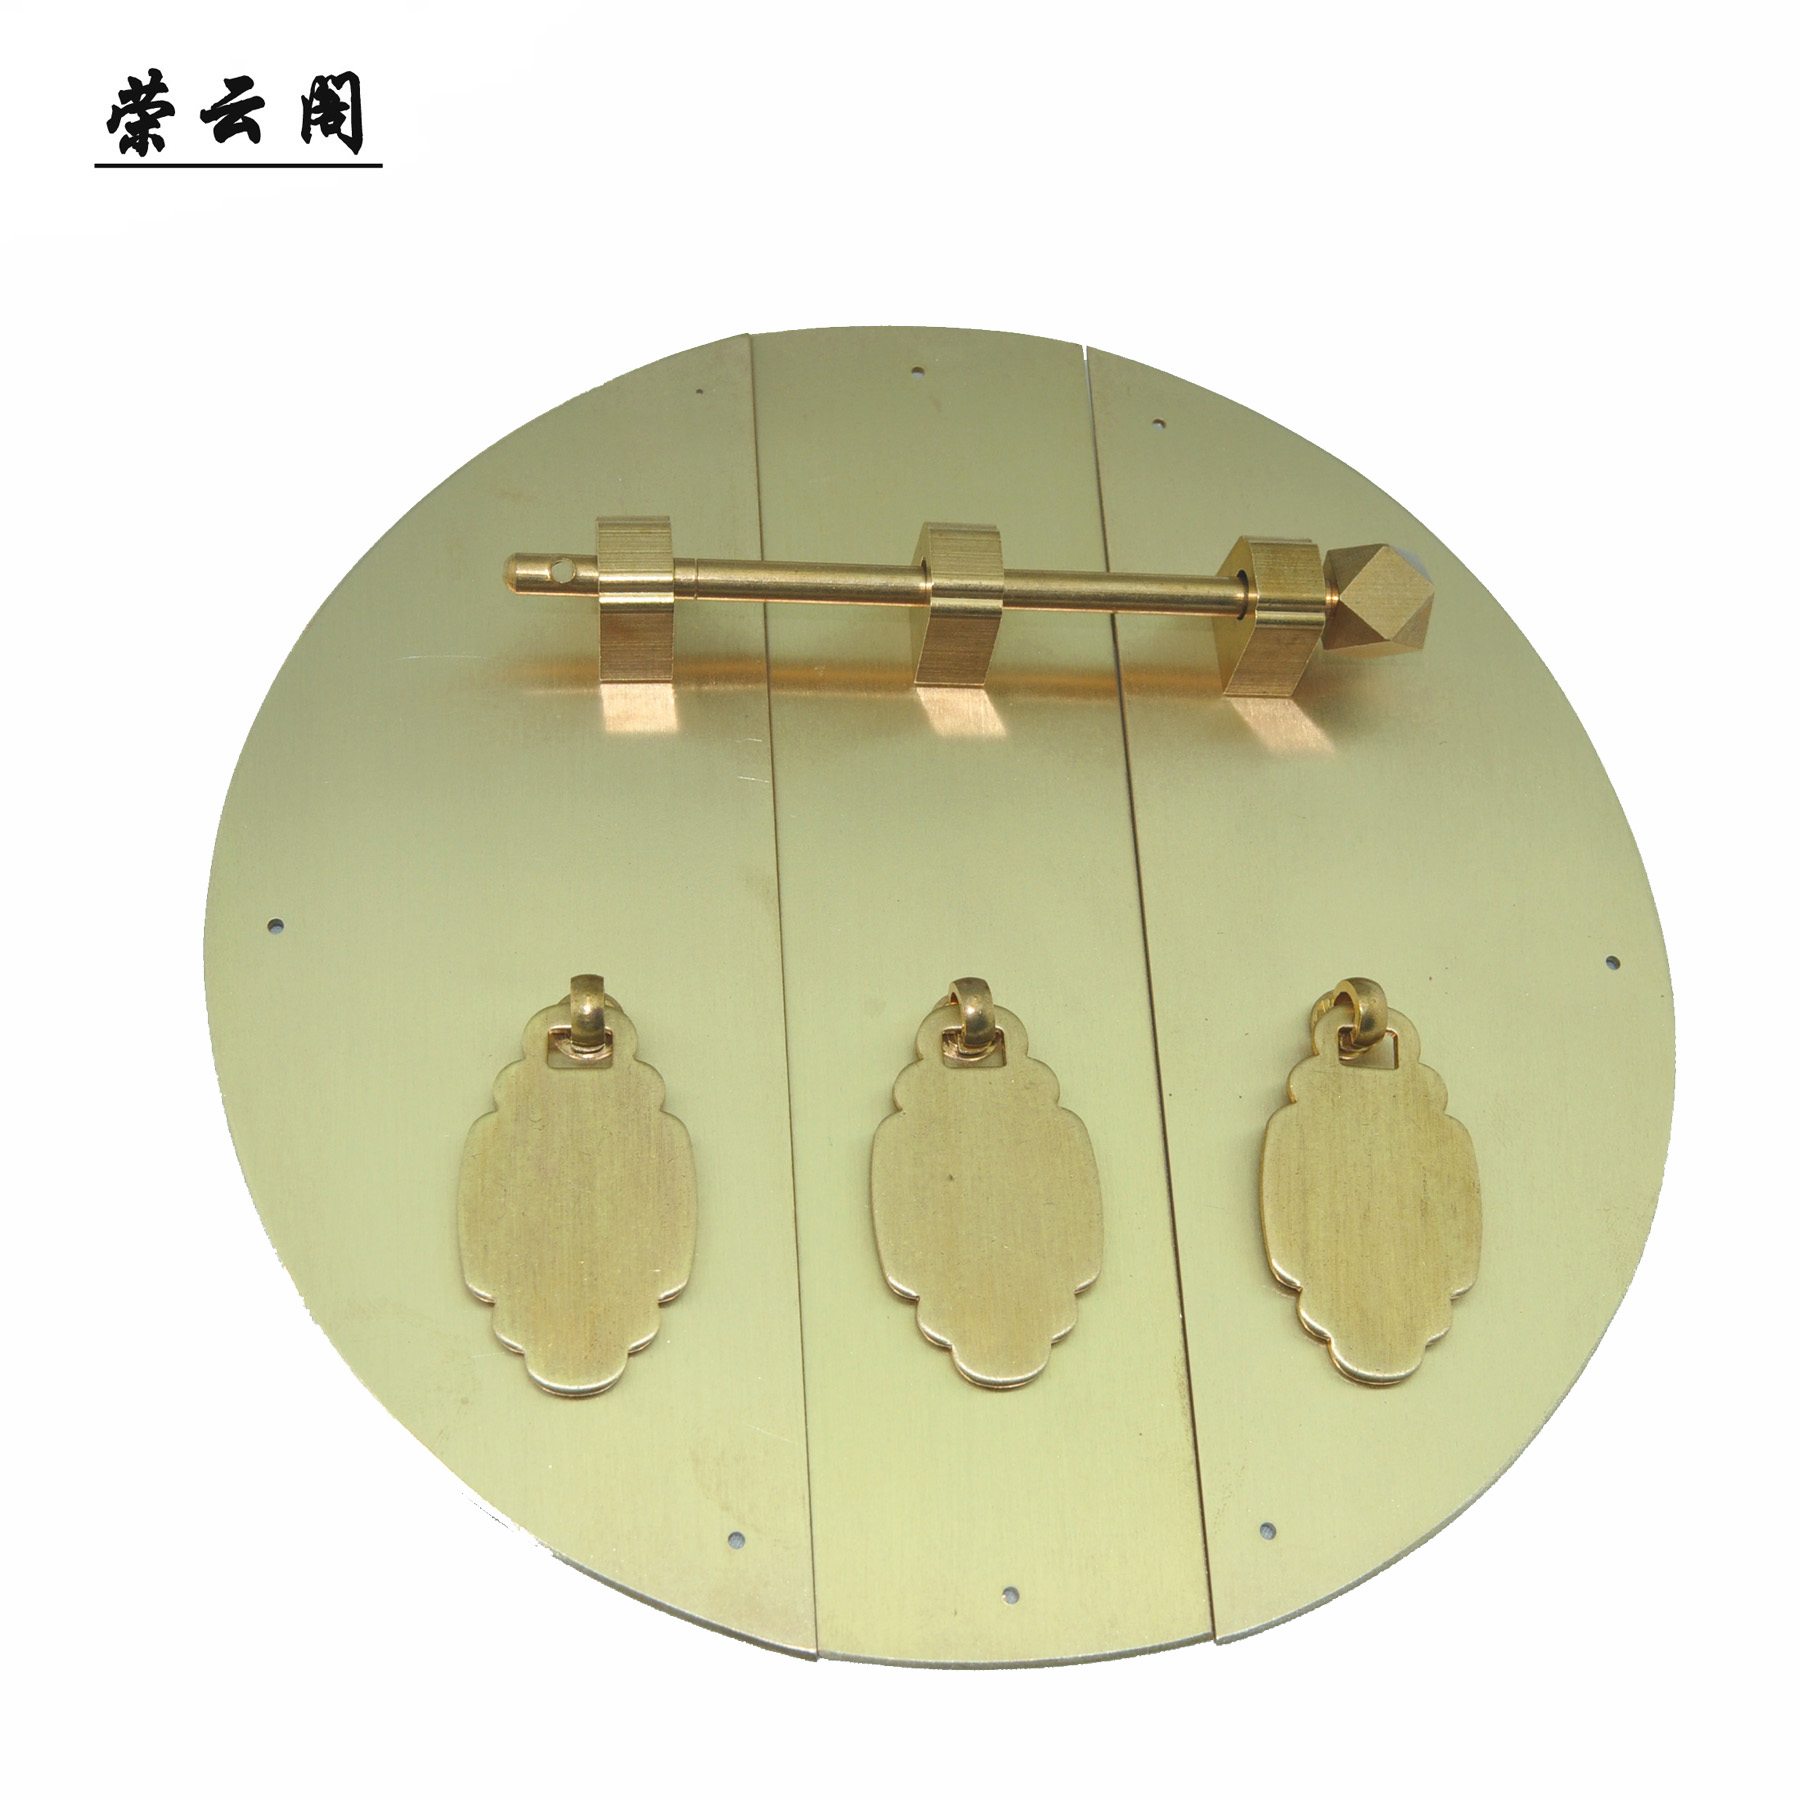 Rongyun ge classic round 24cm copper door handle chinese antique ming and qing furniture accessories a XT-16 large wooden door wardrobe